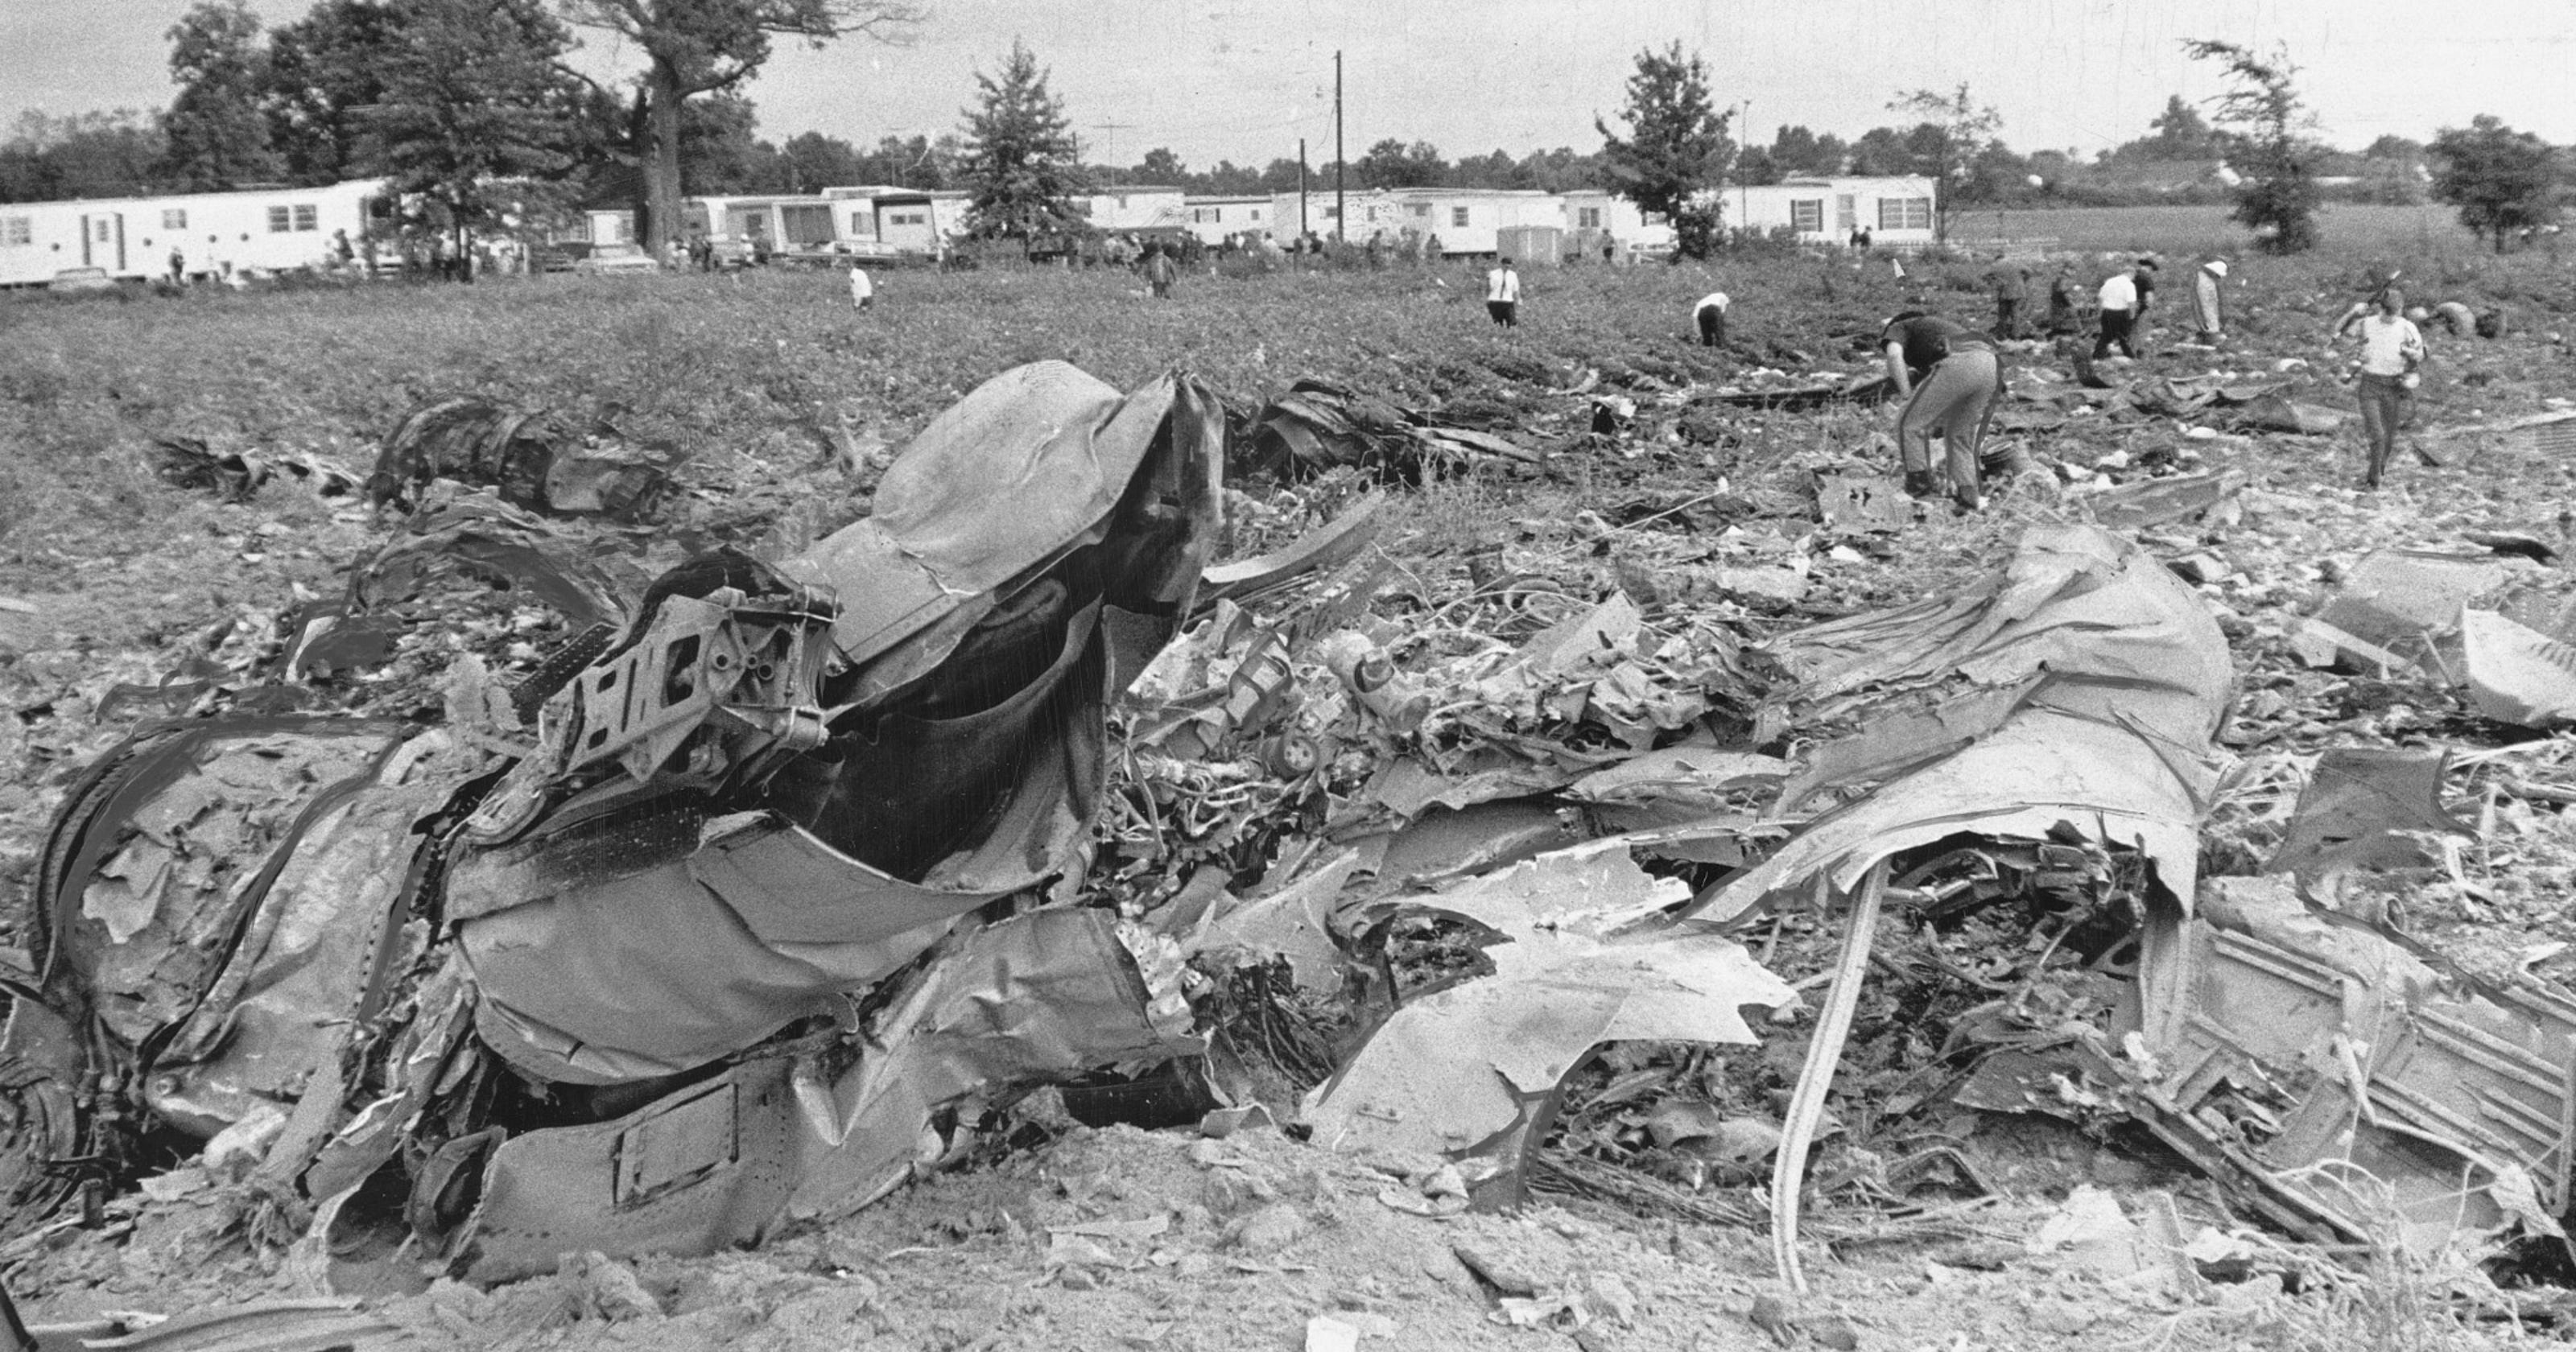 Retro Indy Allegheny Airlines Crash Sept 9 1969 Killed